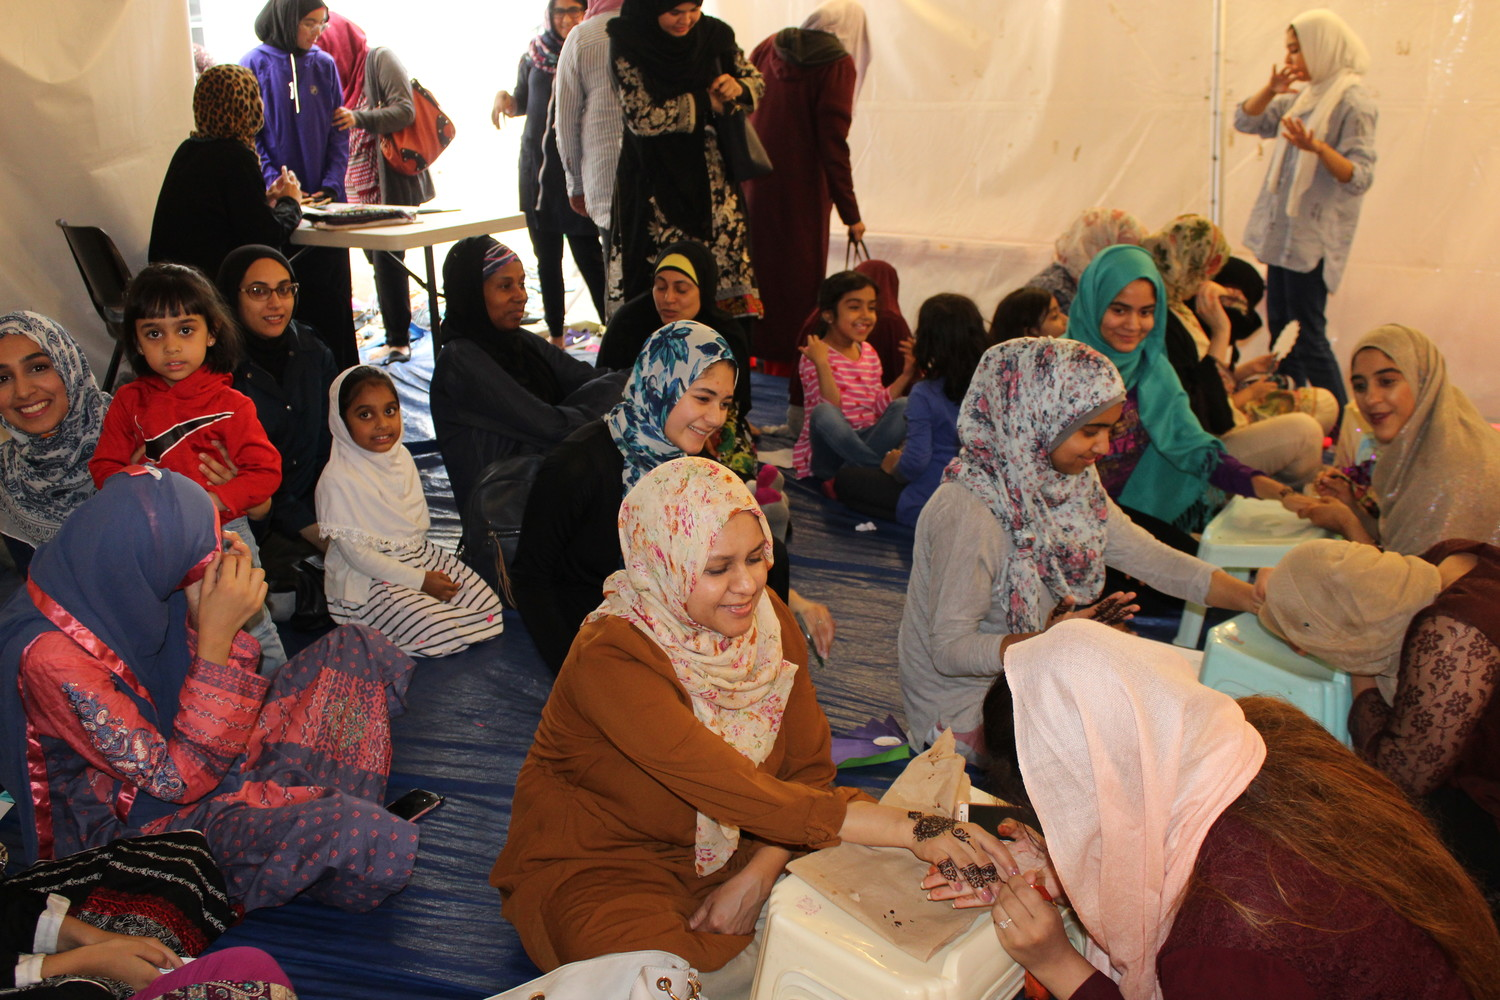 Masjid Hamza hosted a women and children's event before Eid ul-Fitr, during which women got henna tattoos.